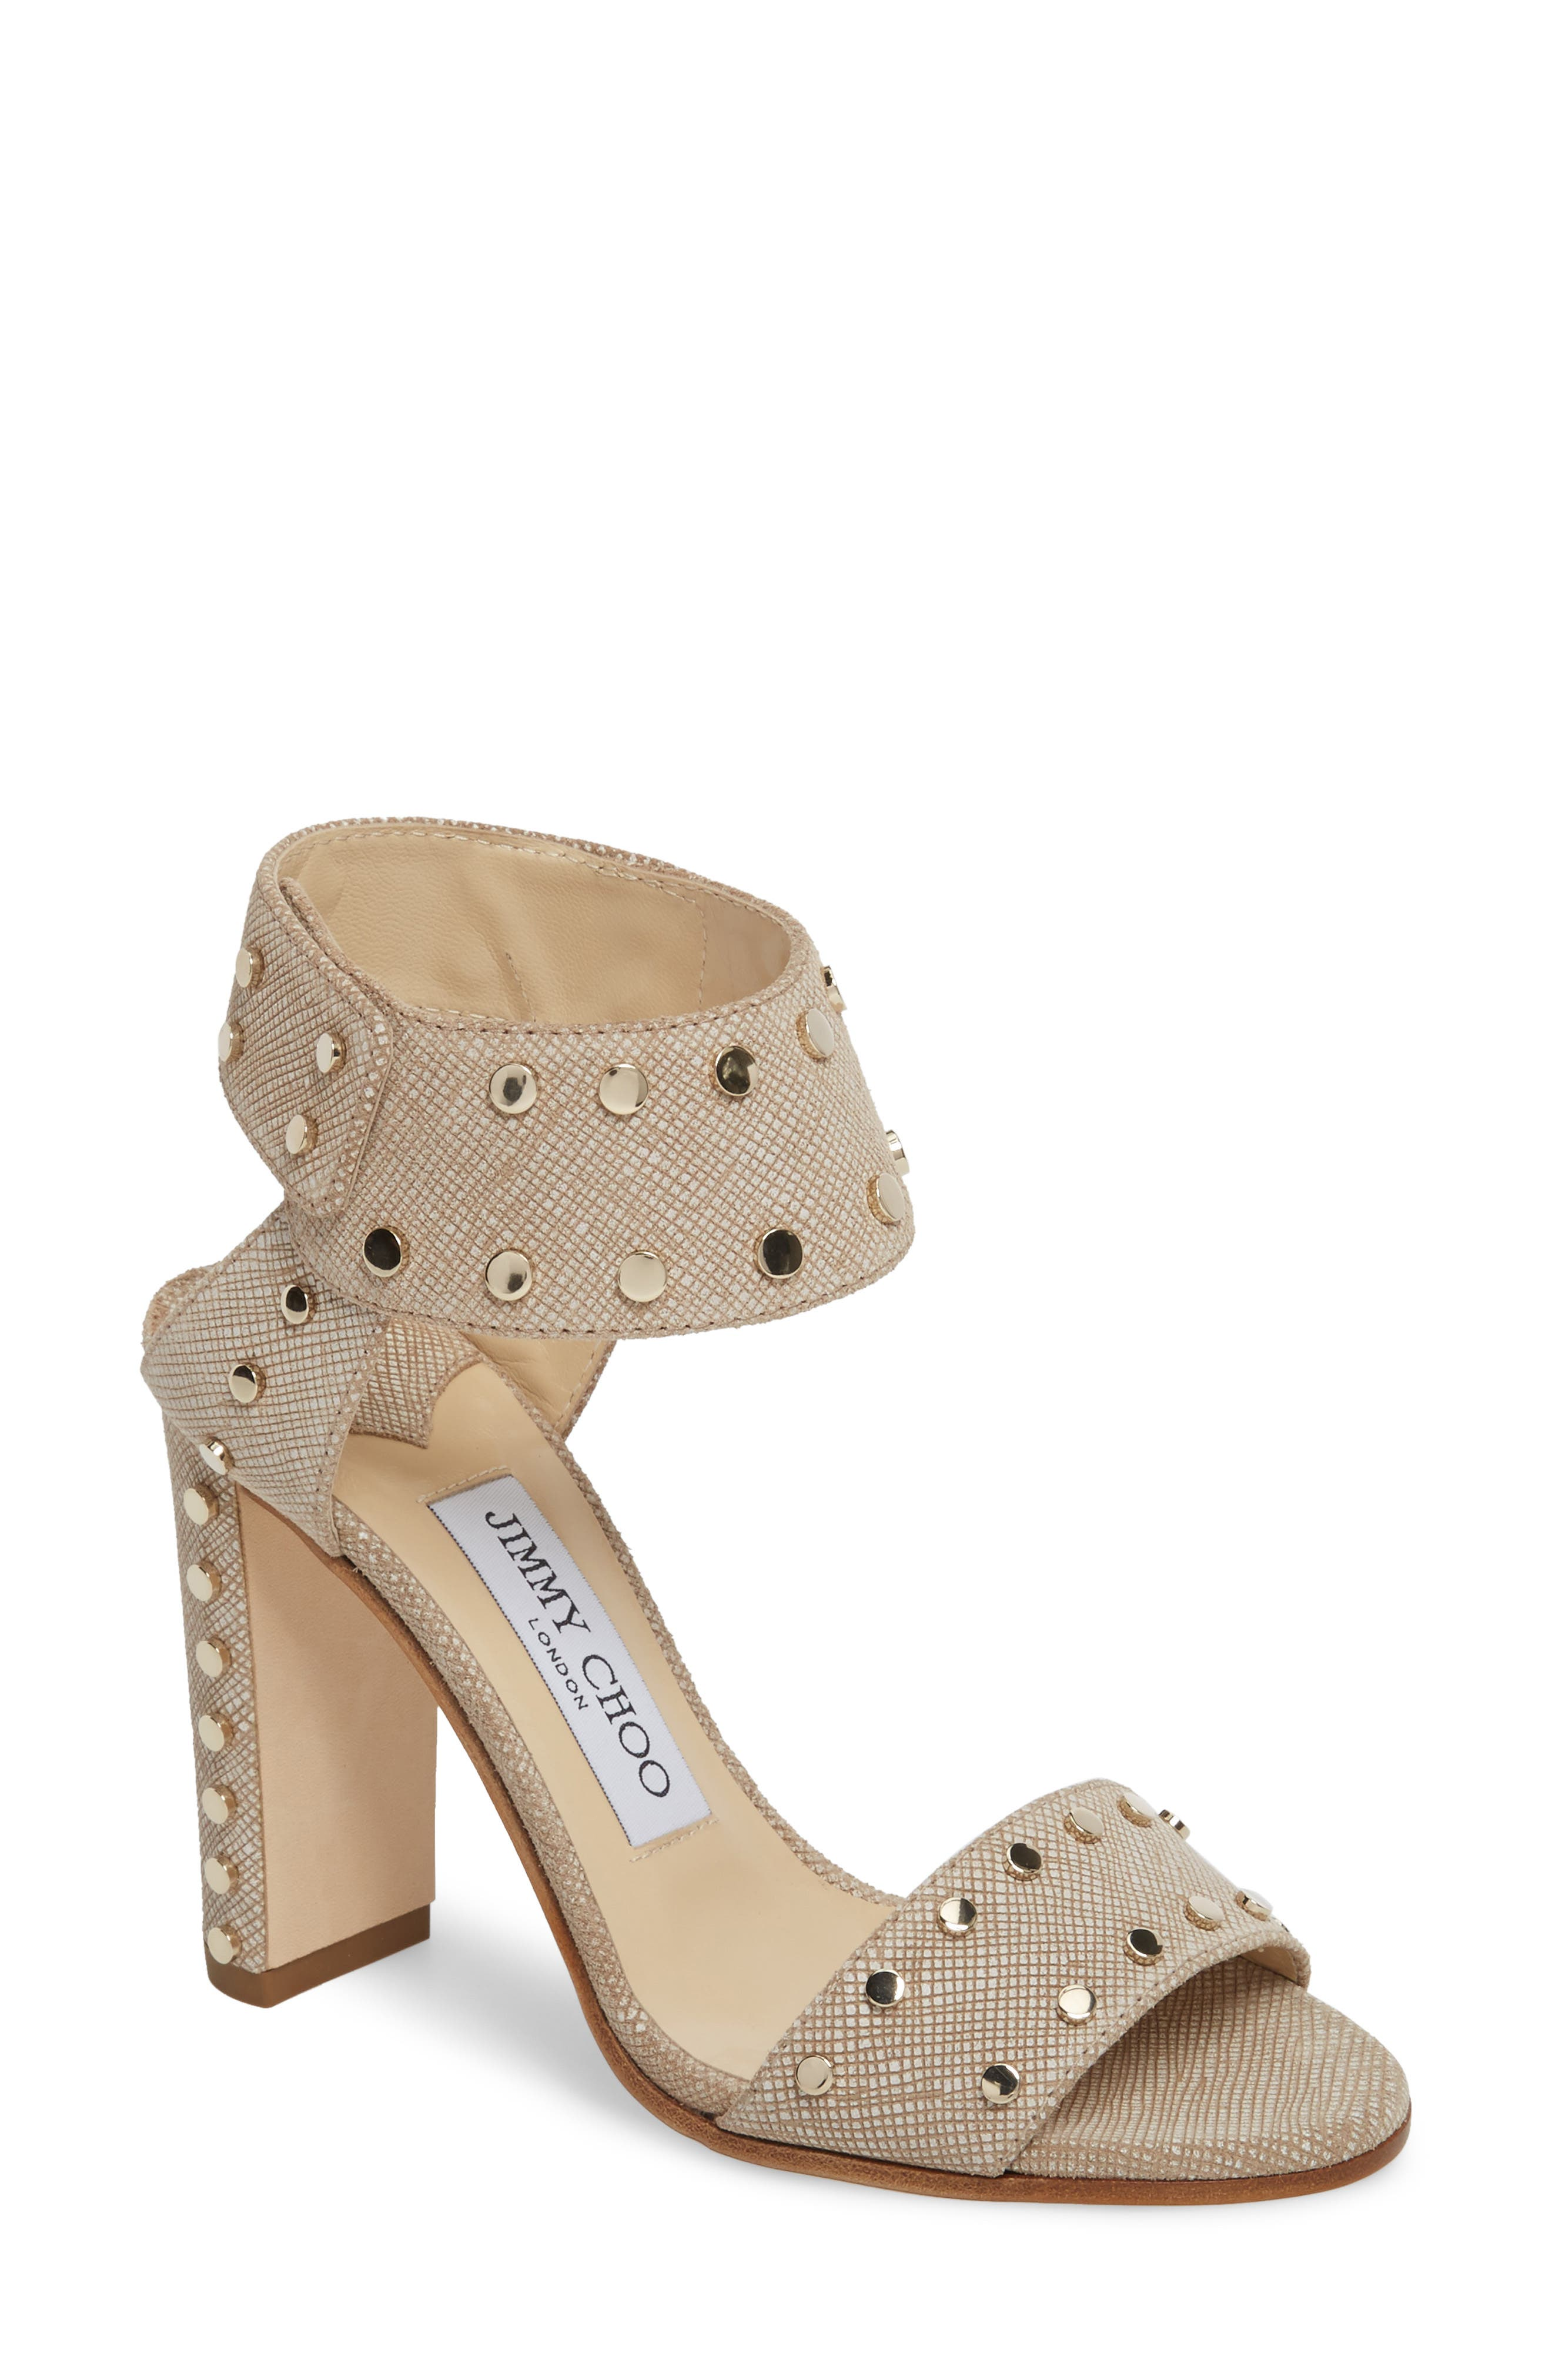 Veto Studded Ankle Cuff Sandal,                         Main,                         color, 270